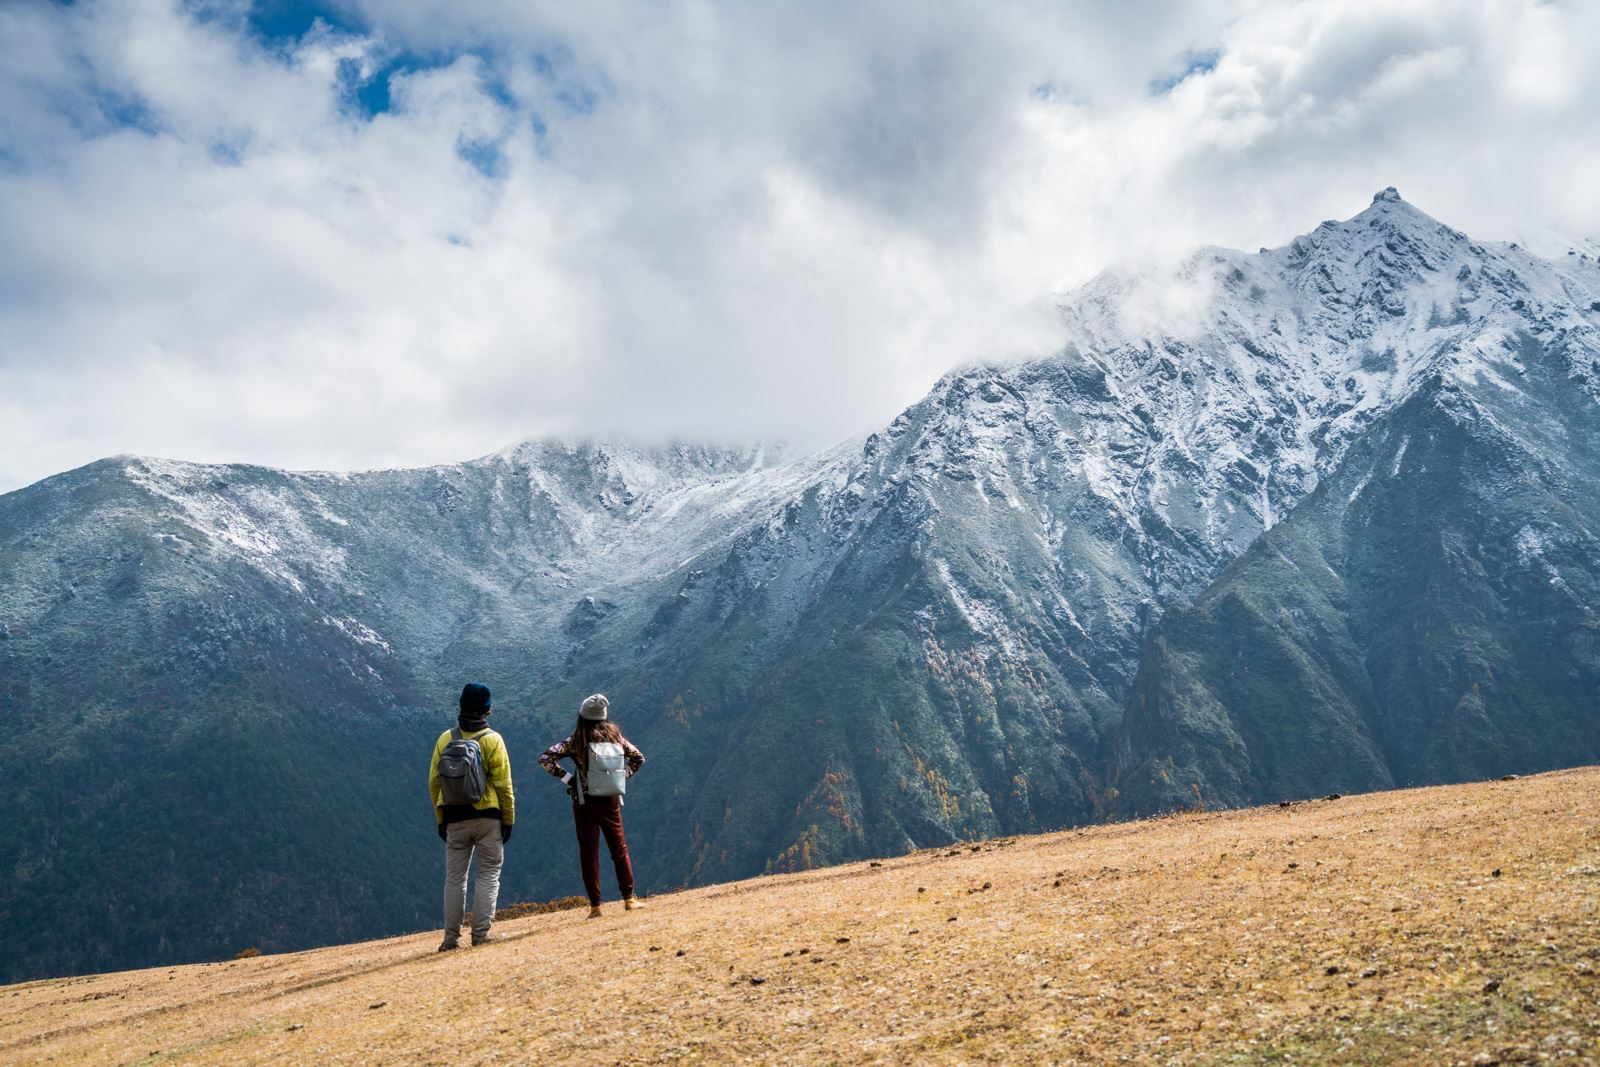 trekking in Bhutan. Photo by Alex Reynolds of Lost With Purpose.